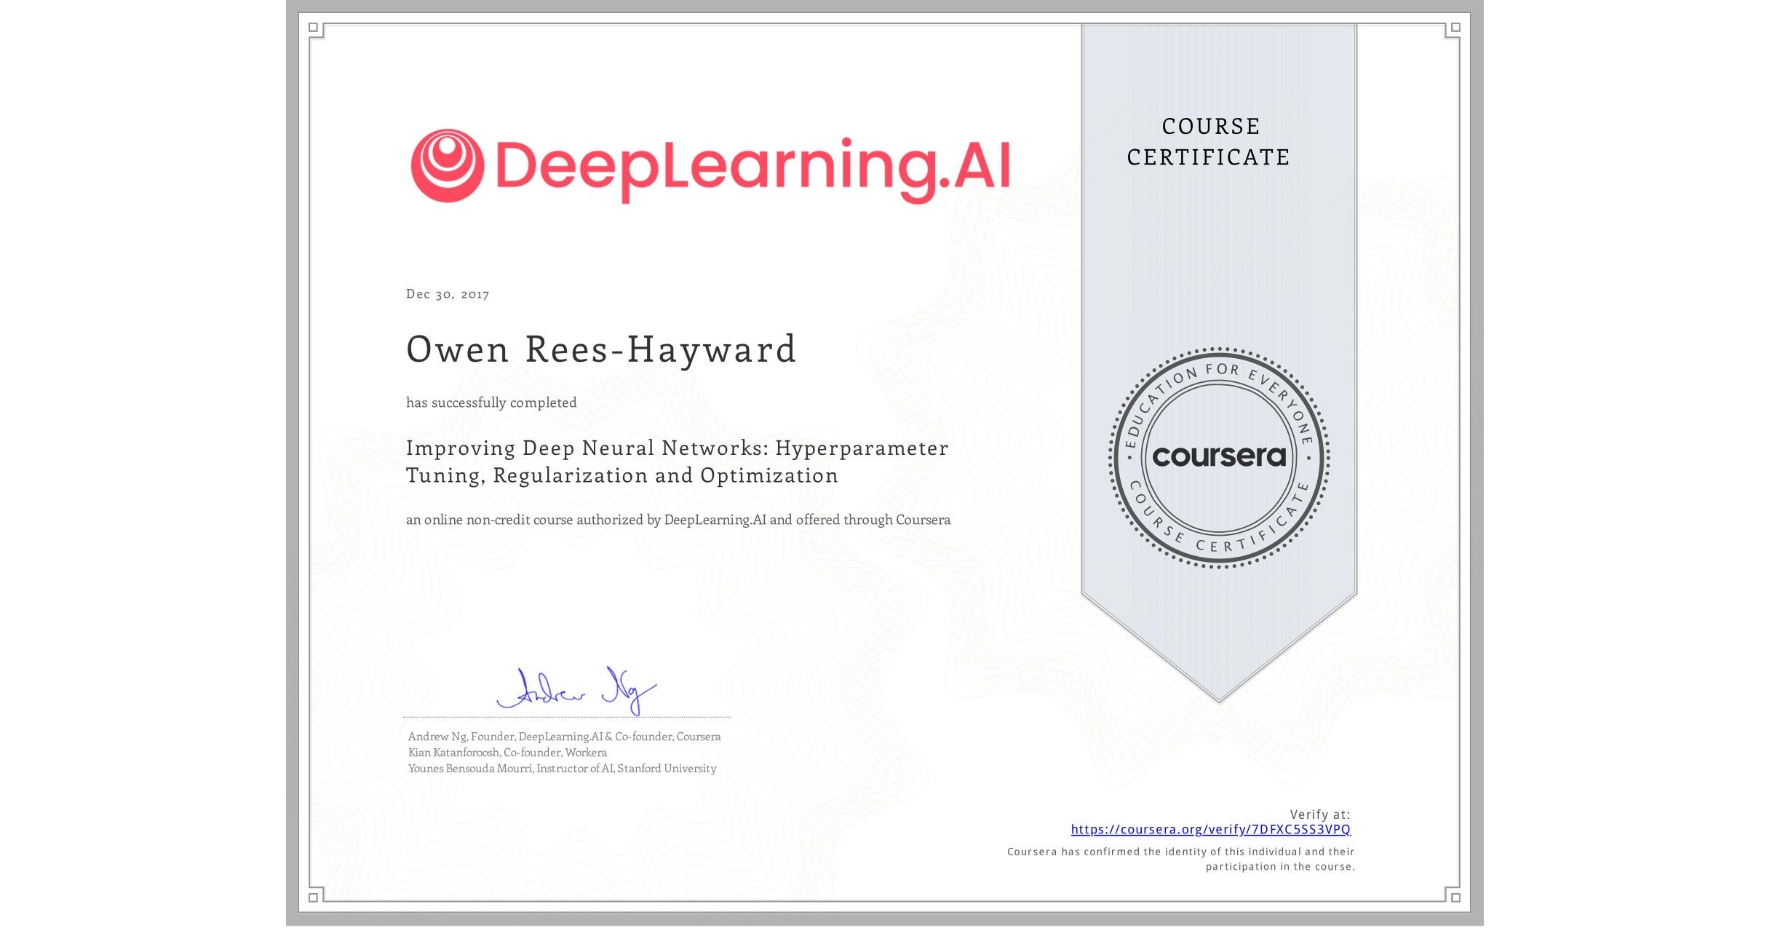 View certificate for Owen Rees-Hayward, Improving Deep Neural Networks: Hyperparameter Tuning, Regularization and Optimization, an online non-credit course authorized by DeepLearning.AI and offered through Coursera